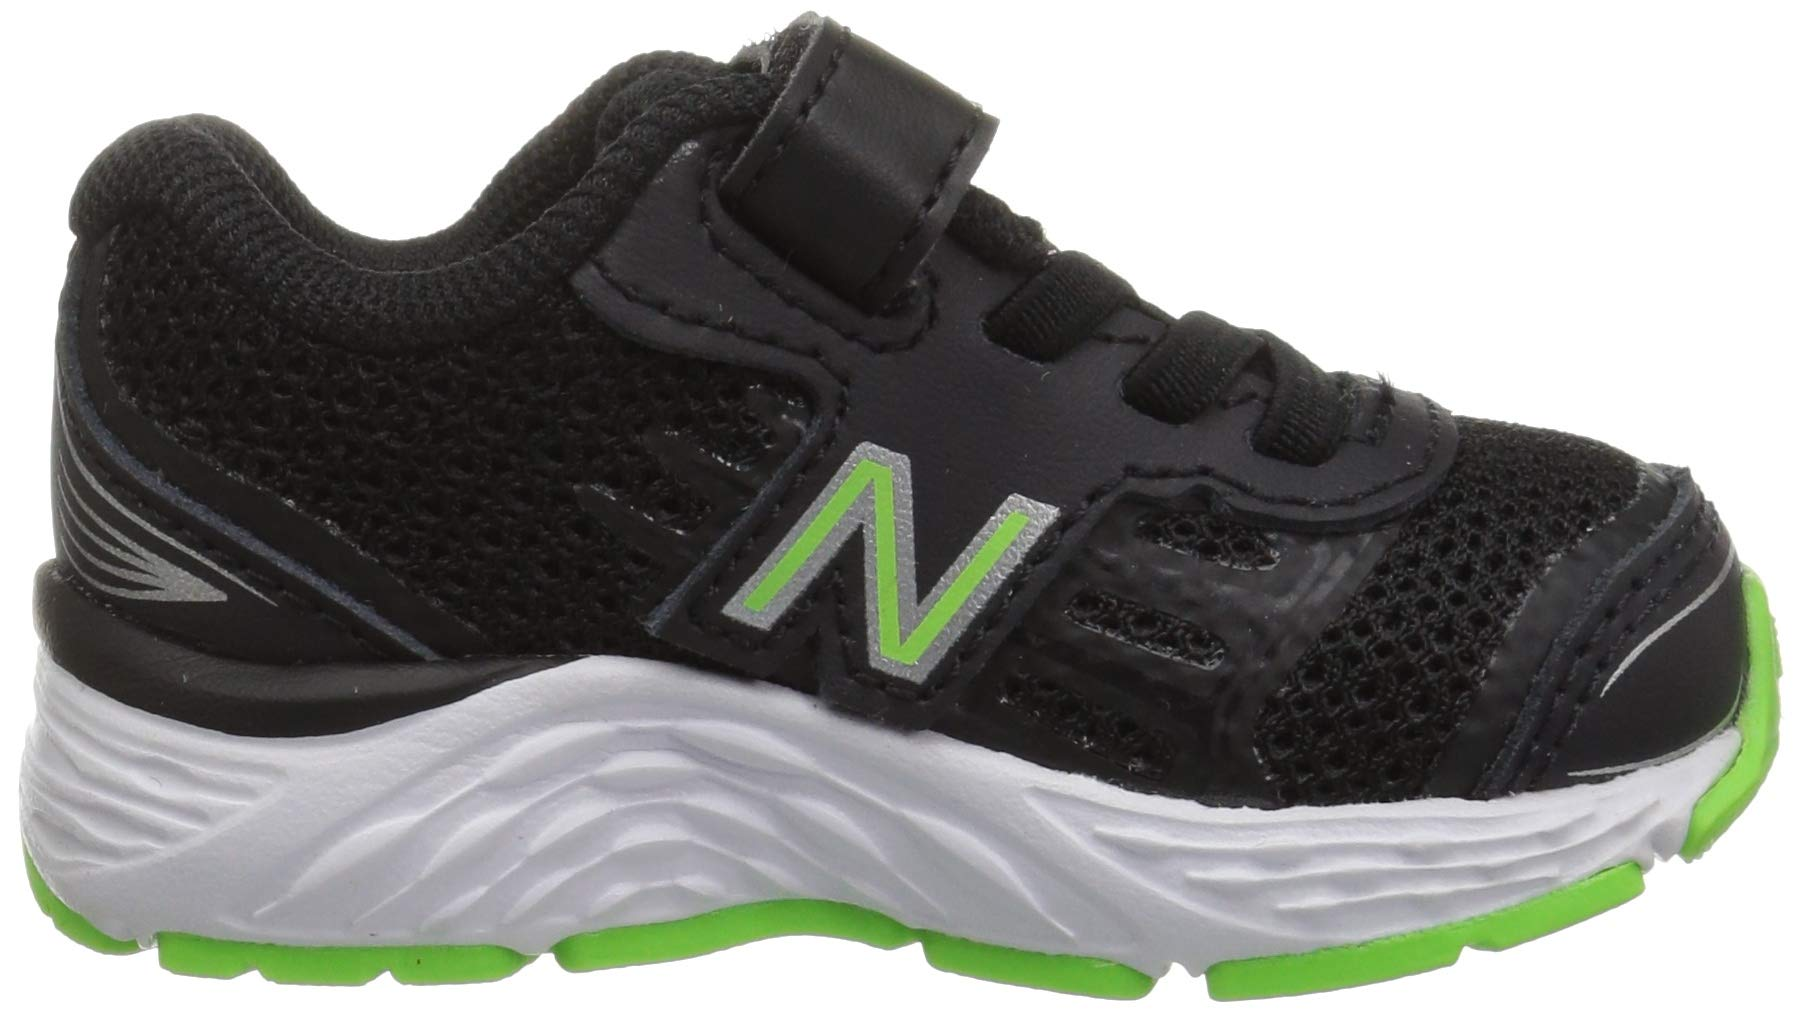 New Balance Boys' 680v5 Hook and Loop Running Shoe Black/RBG Green 2 M US Infant by New Balance (Image #7)